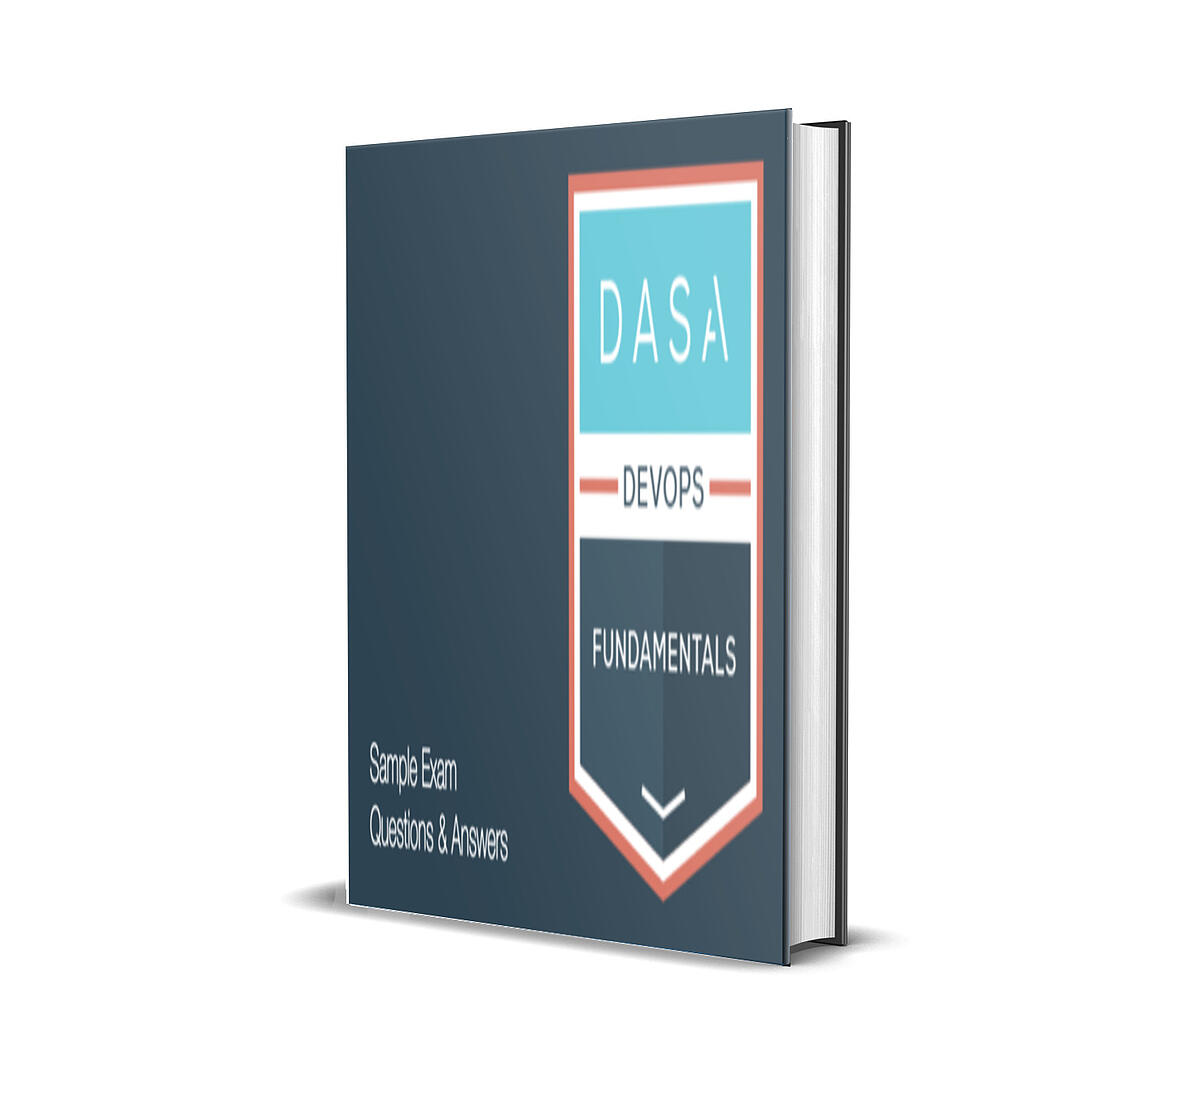 dasa-devops-fundamental-sample-exam-cover